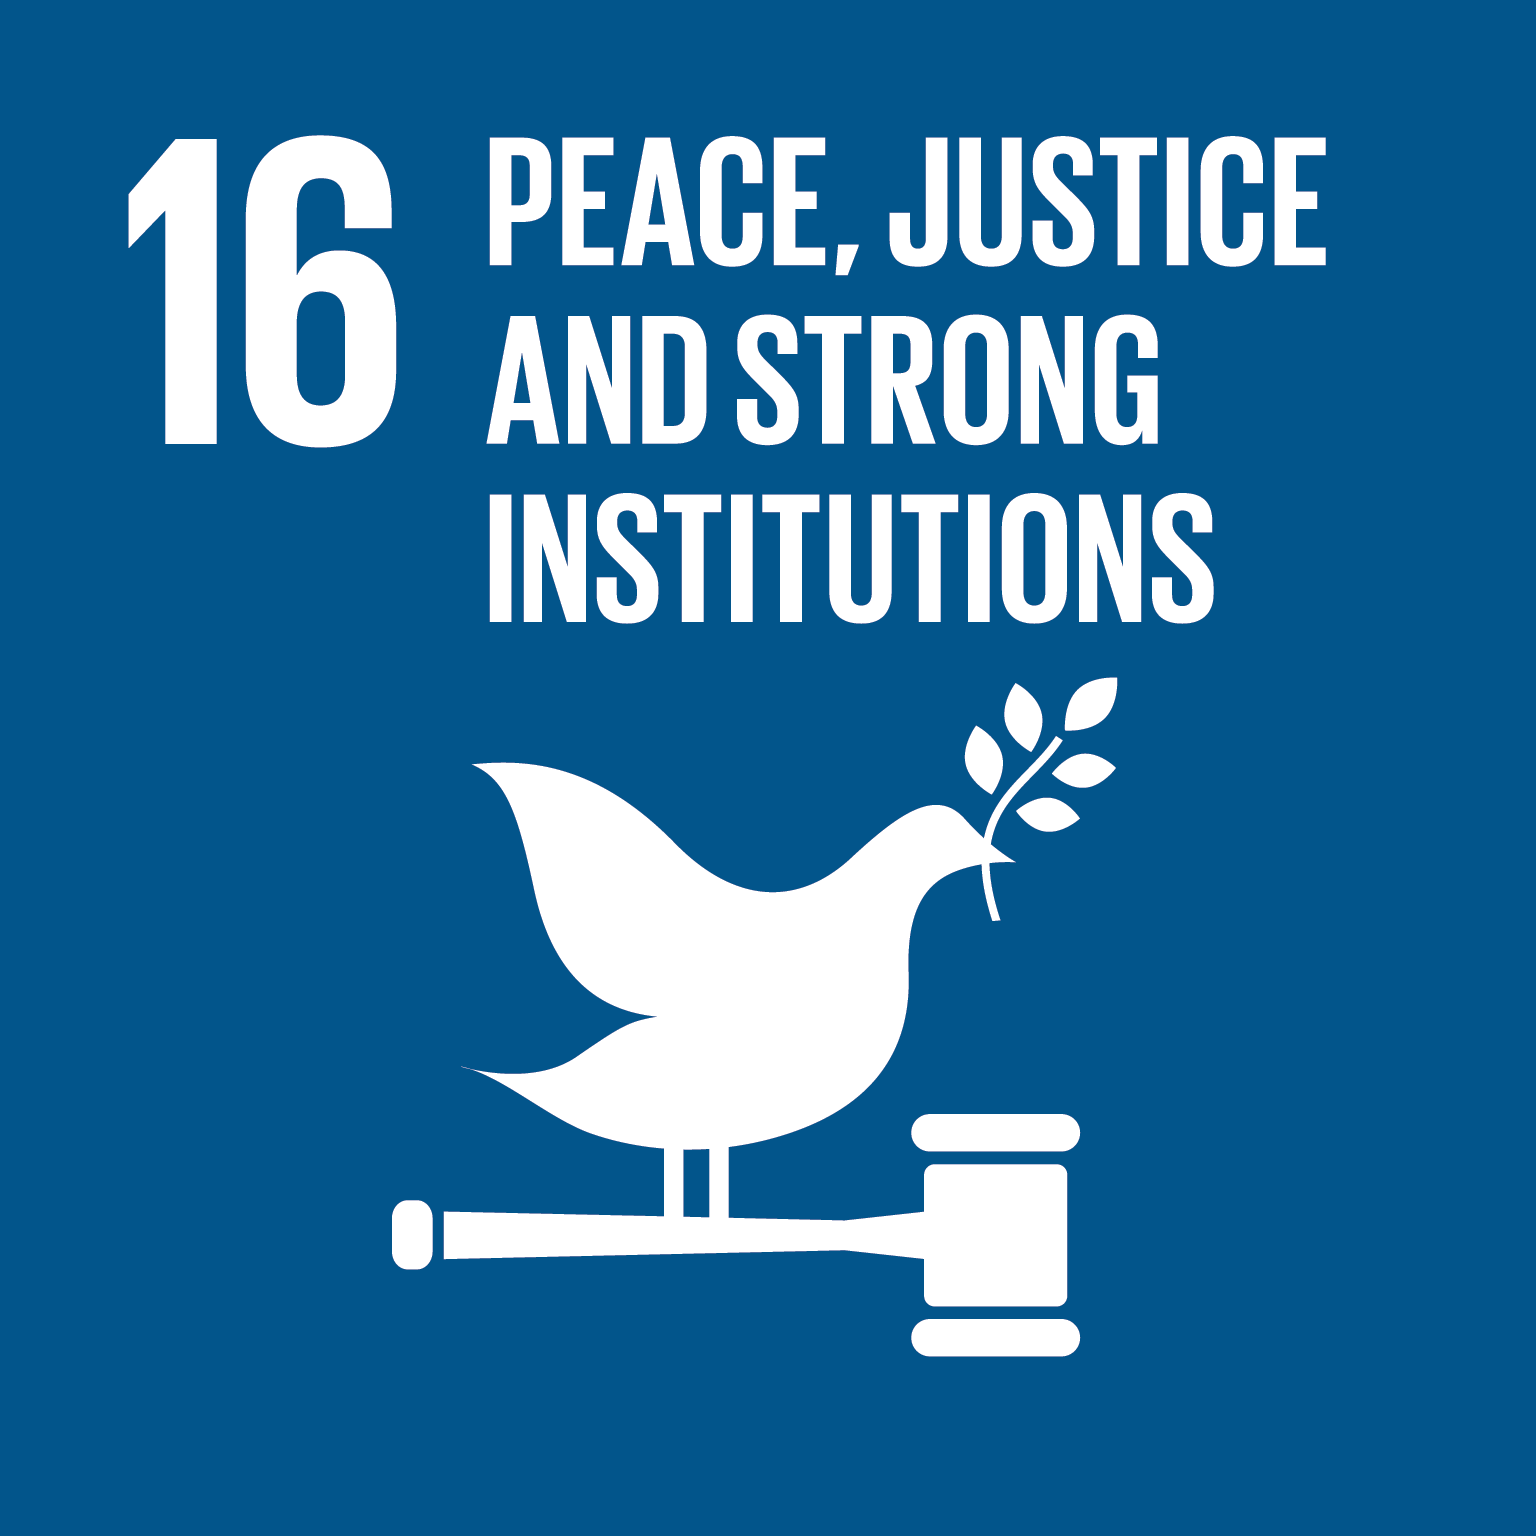 U.N. SDG goal 16, peace, justice and strong institutions